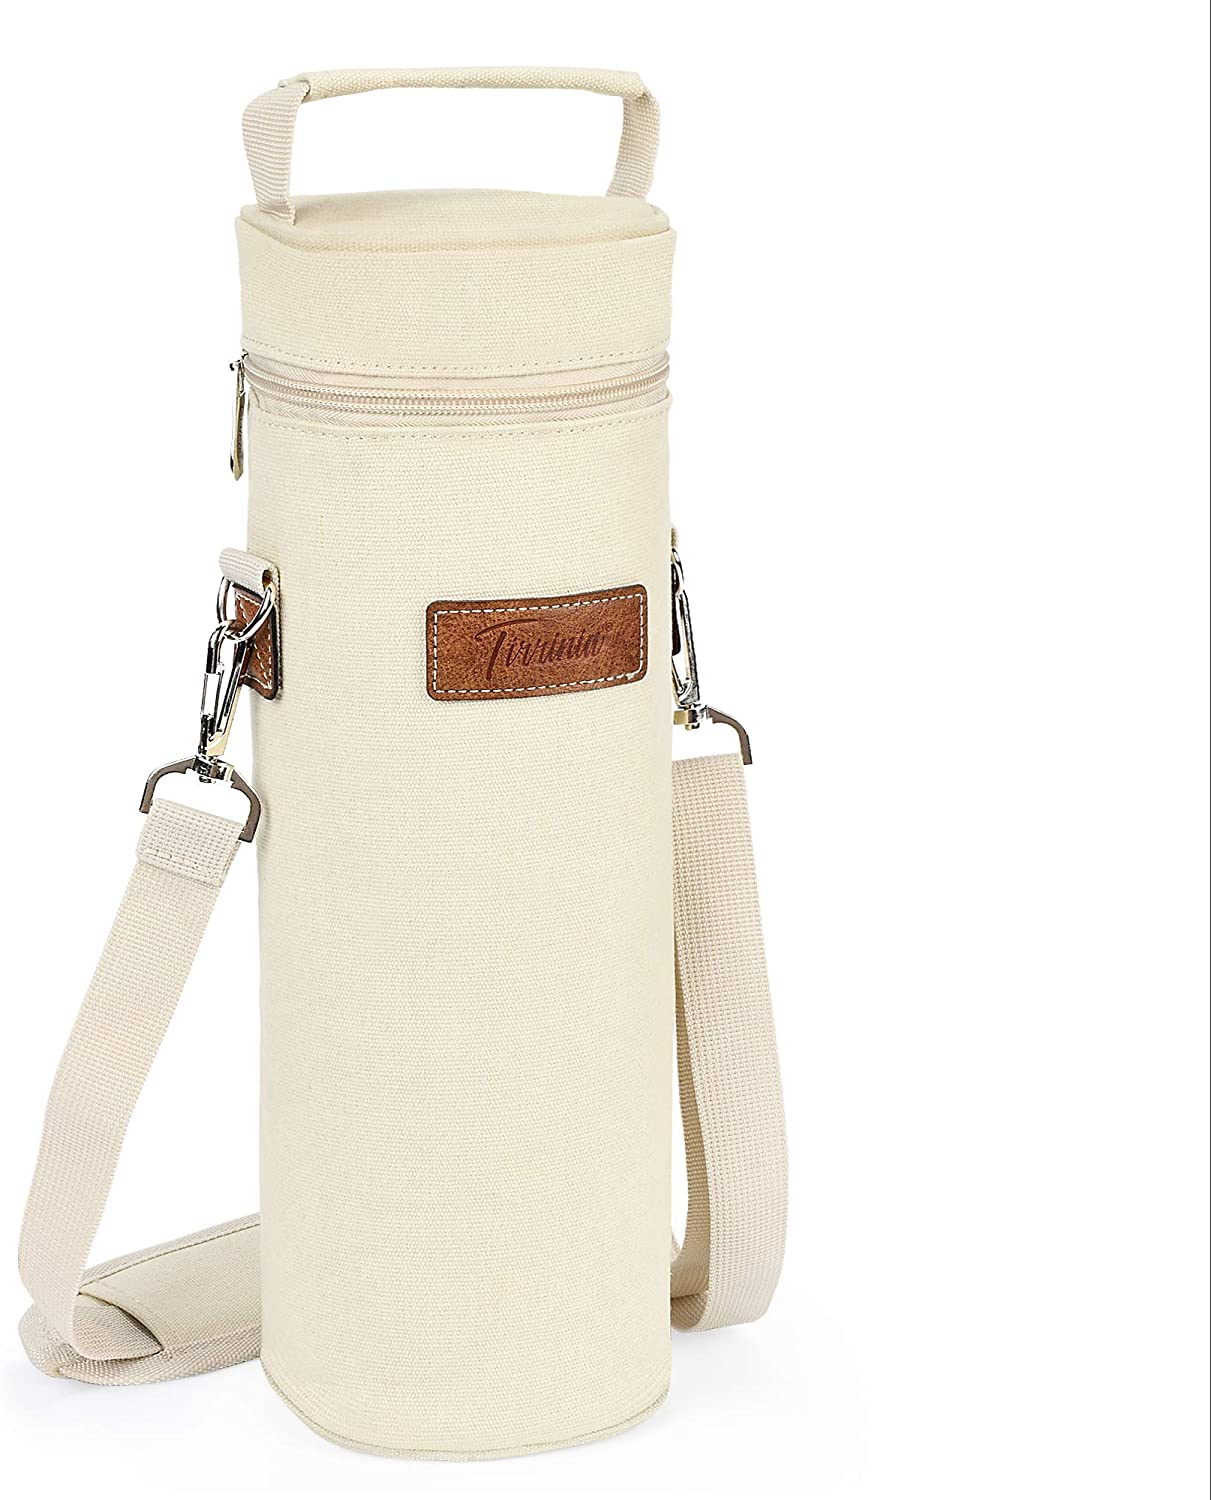 Tirrinia Single Wine Cooler Bags - Insulated & Padded Portable Wine Tote Carrier for Travel, BYOB Restaurant, Wine Tasting, Party, Great Gift for Wine Lover, Beige